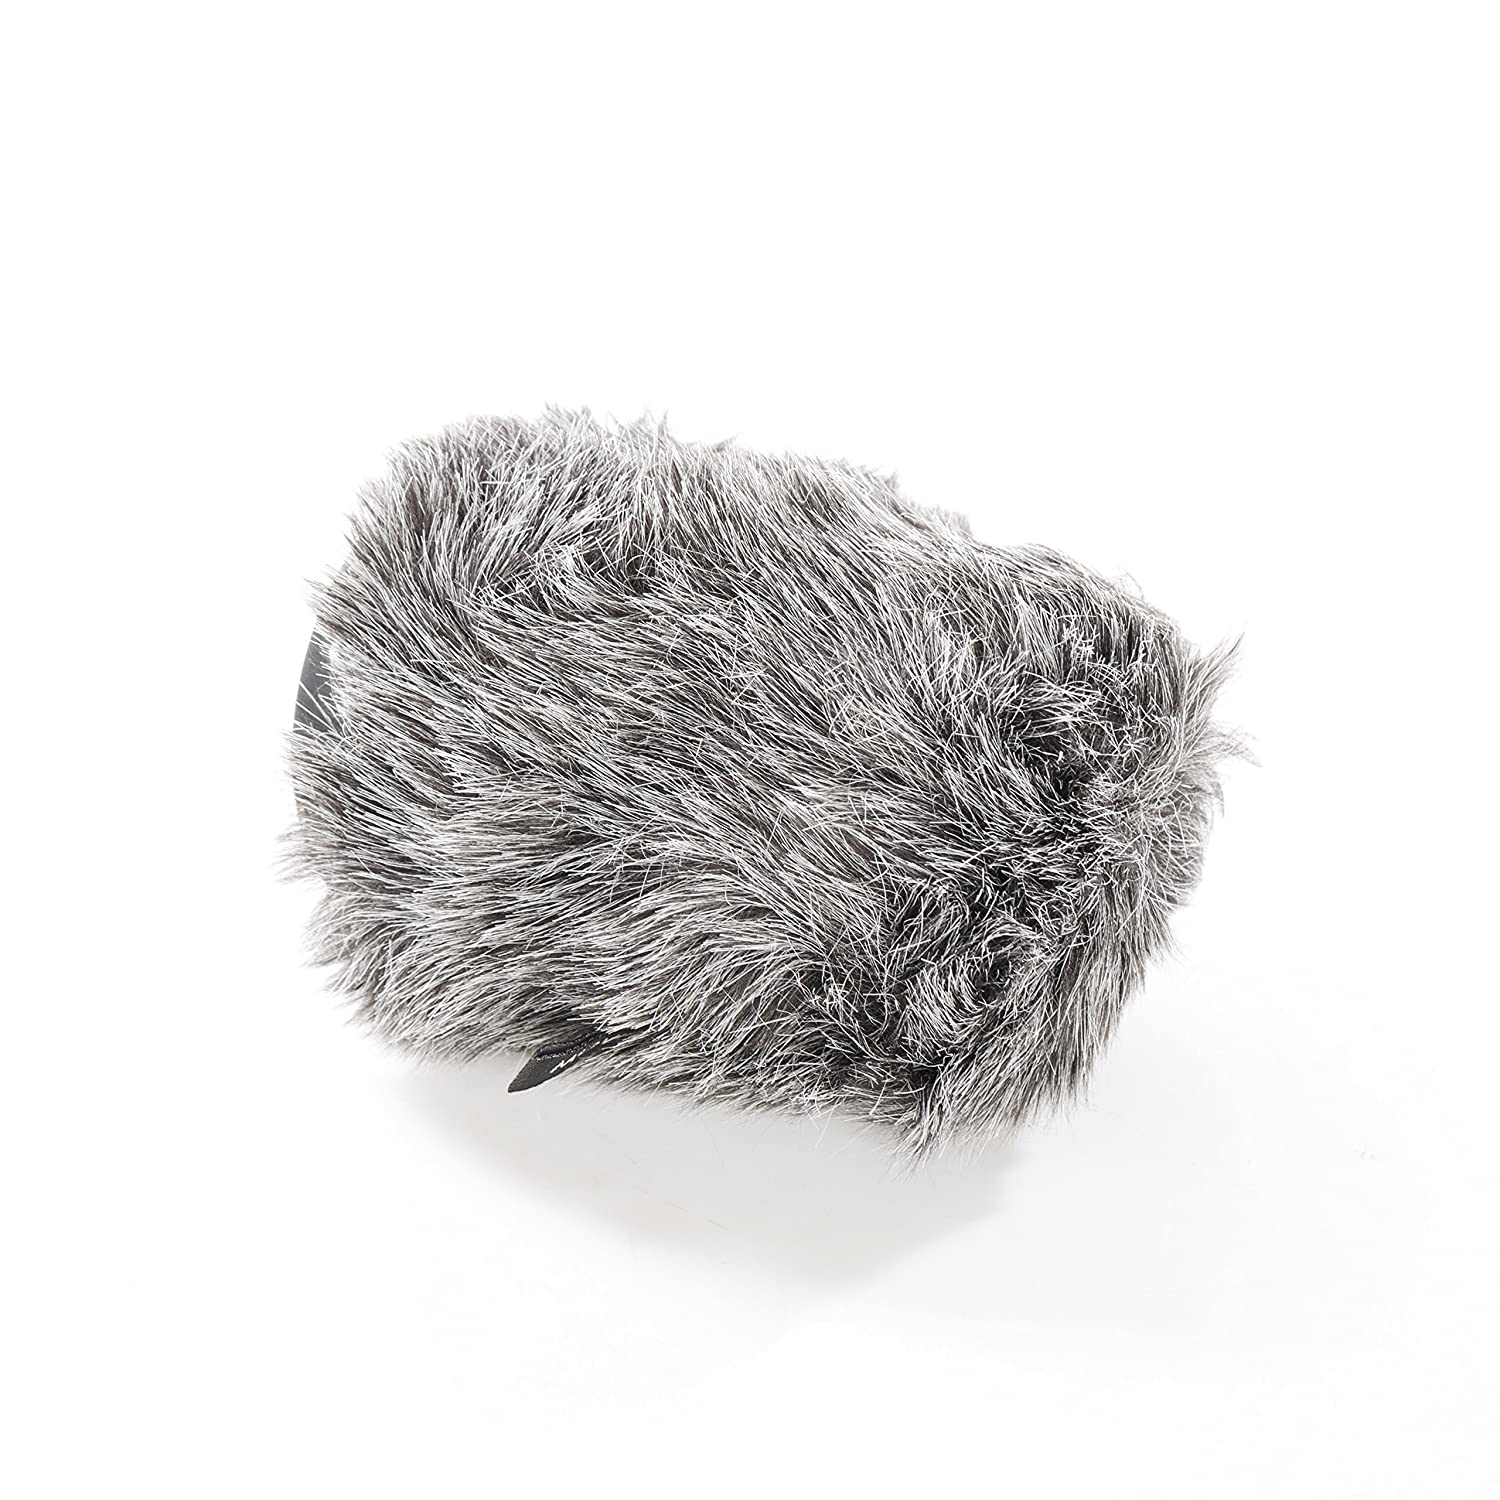 8cm Movo WS-G80 Furry Rigid Windscreen for Microphones 18-23mm in Diameter and up to 3.1 Long Dark Gray